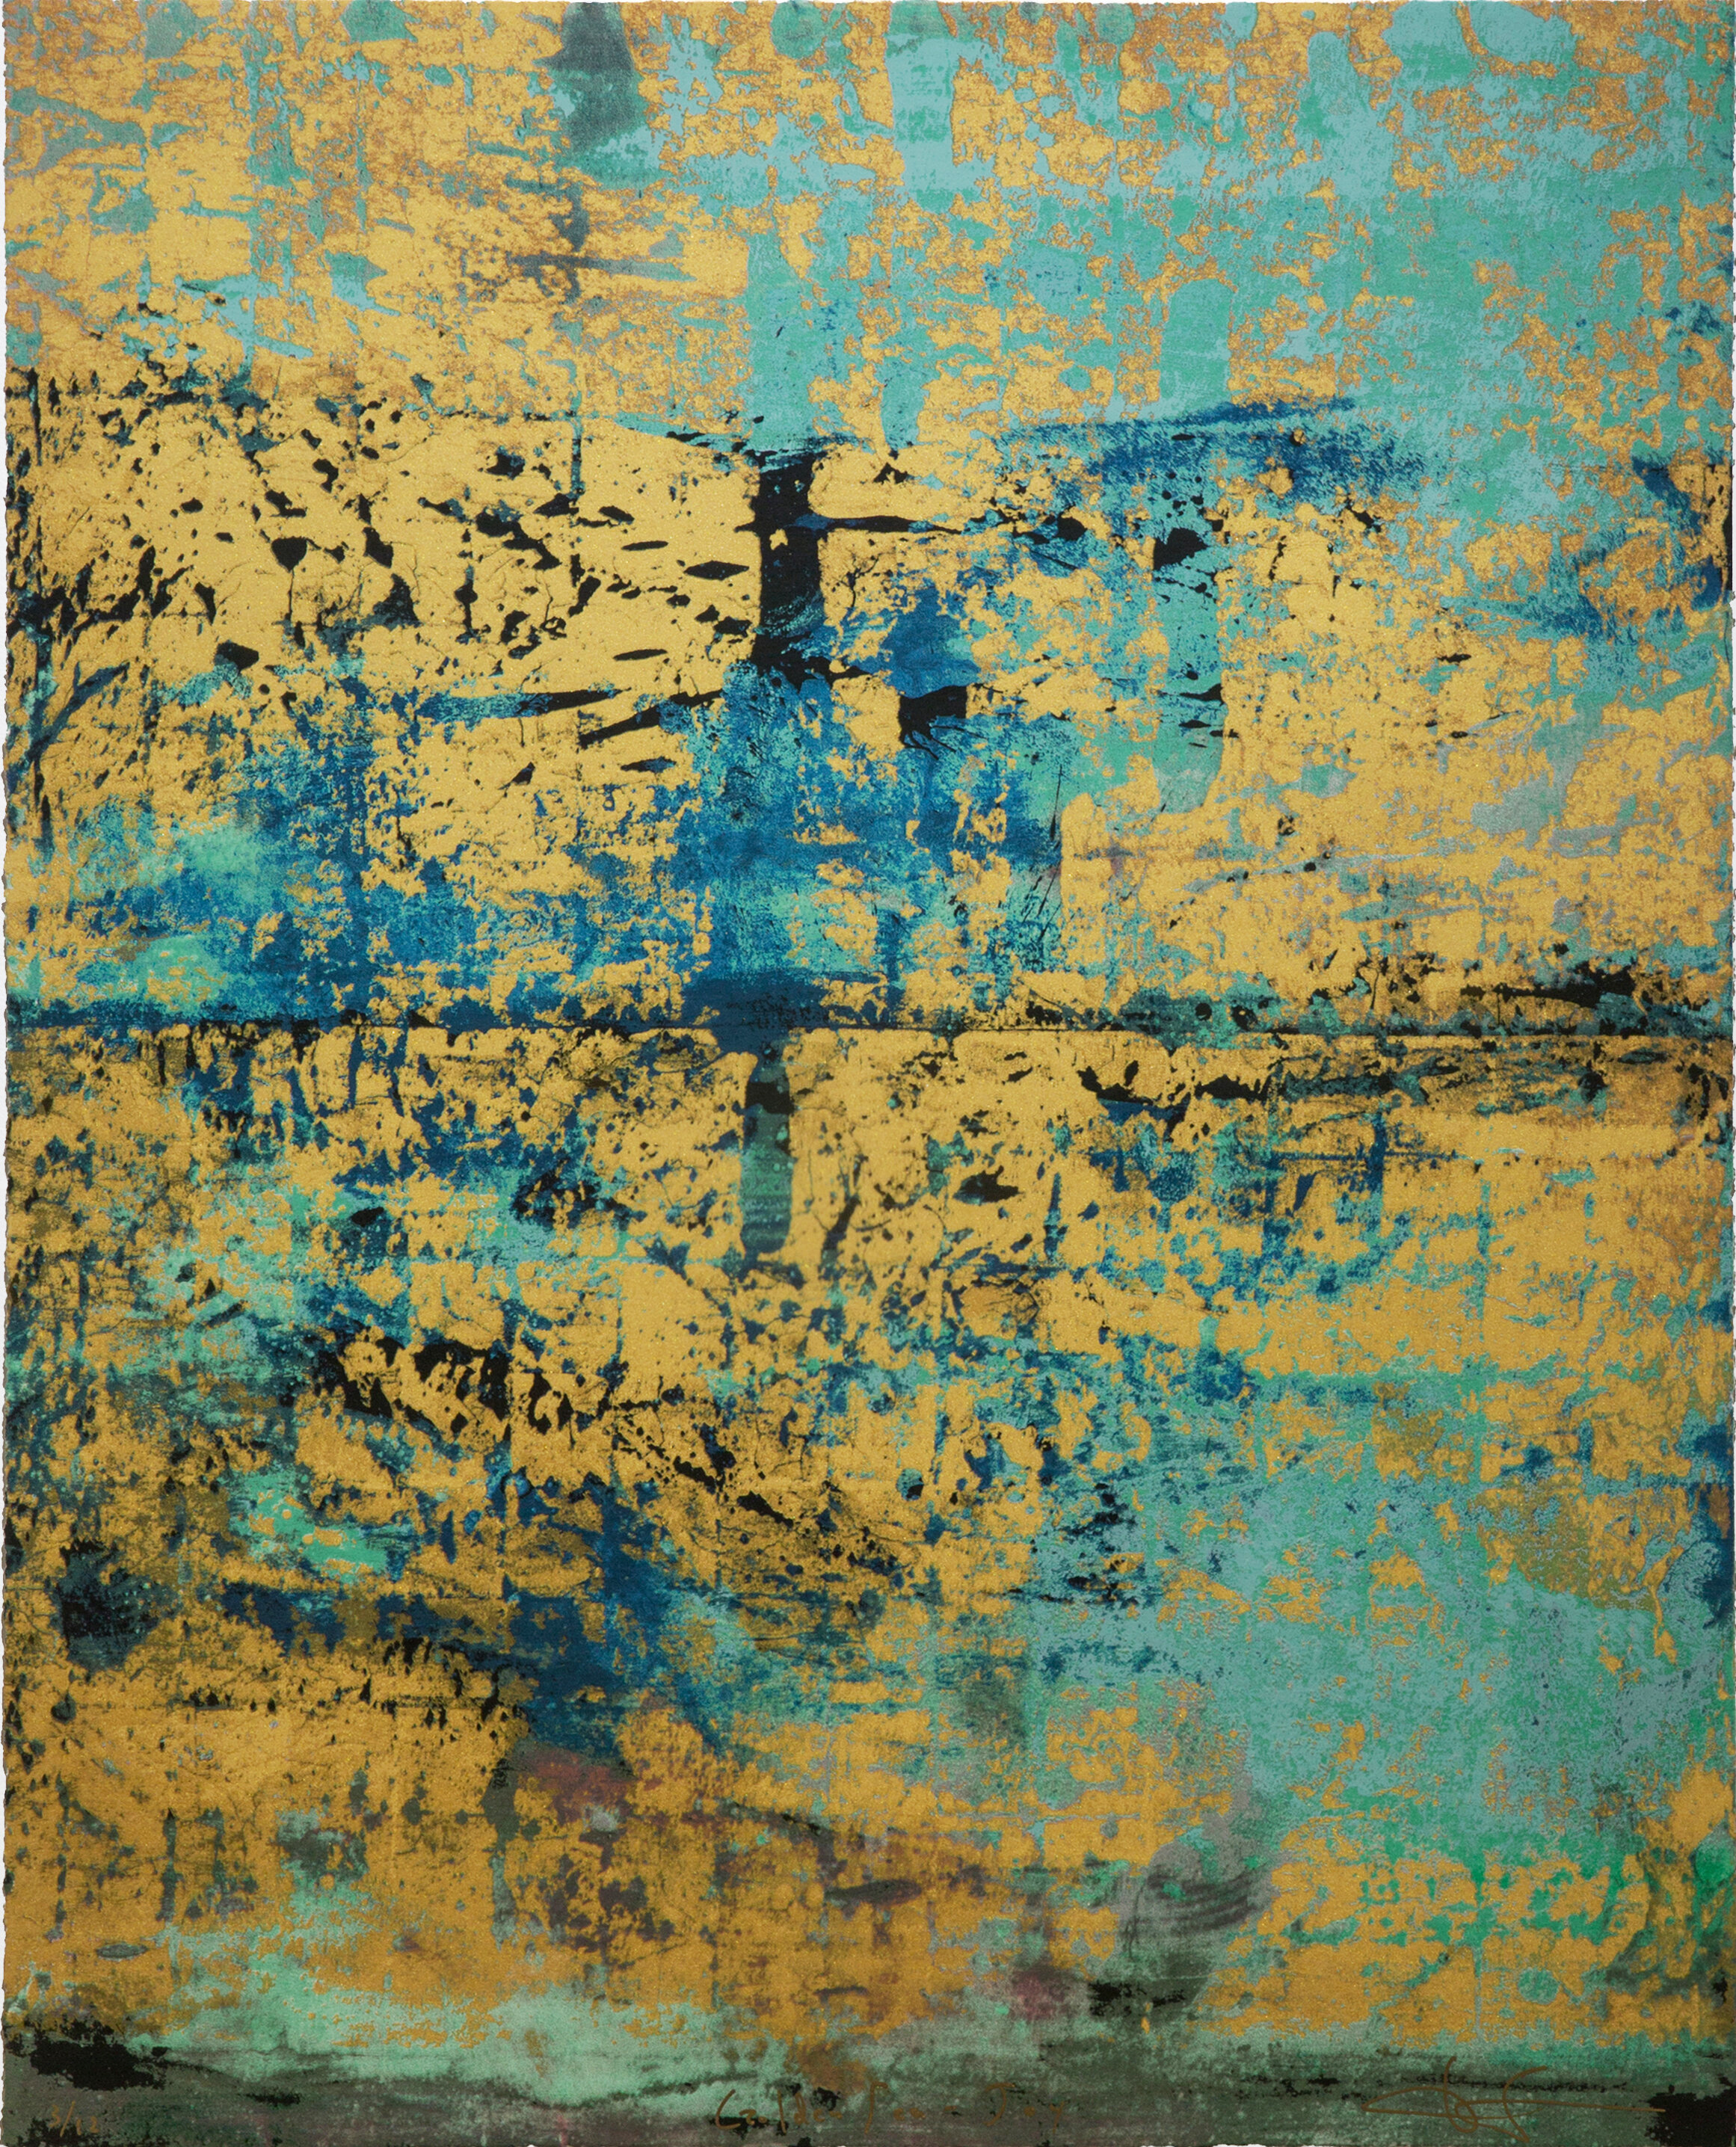 GOLDEN SEA : BLUE Silkscreen Print with gold leaf and gold powder    12 Total Editions  Image Size: 25 1⁄2 x 32 inches (vertical)